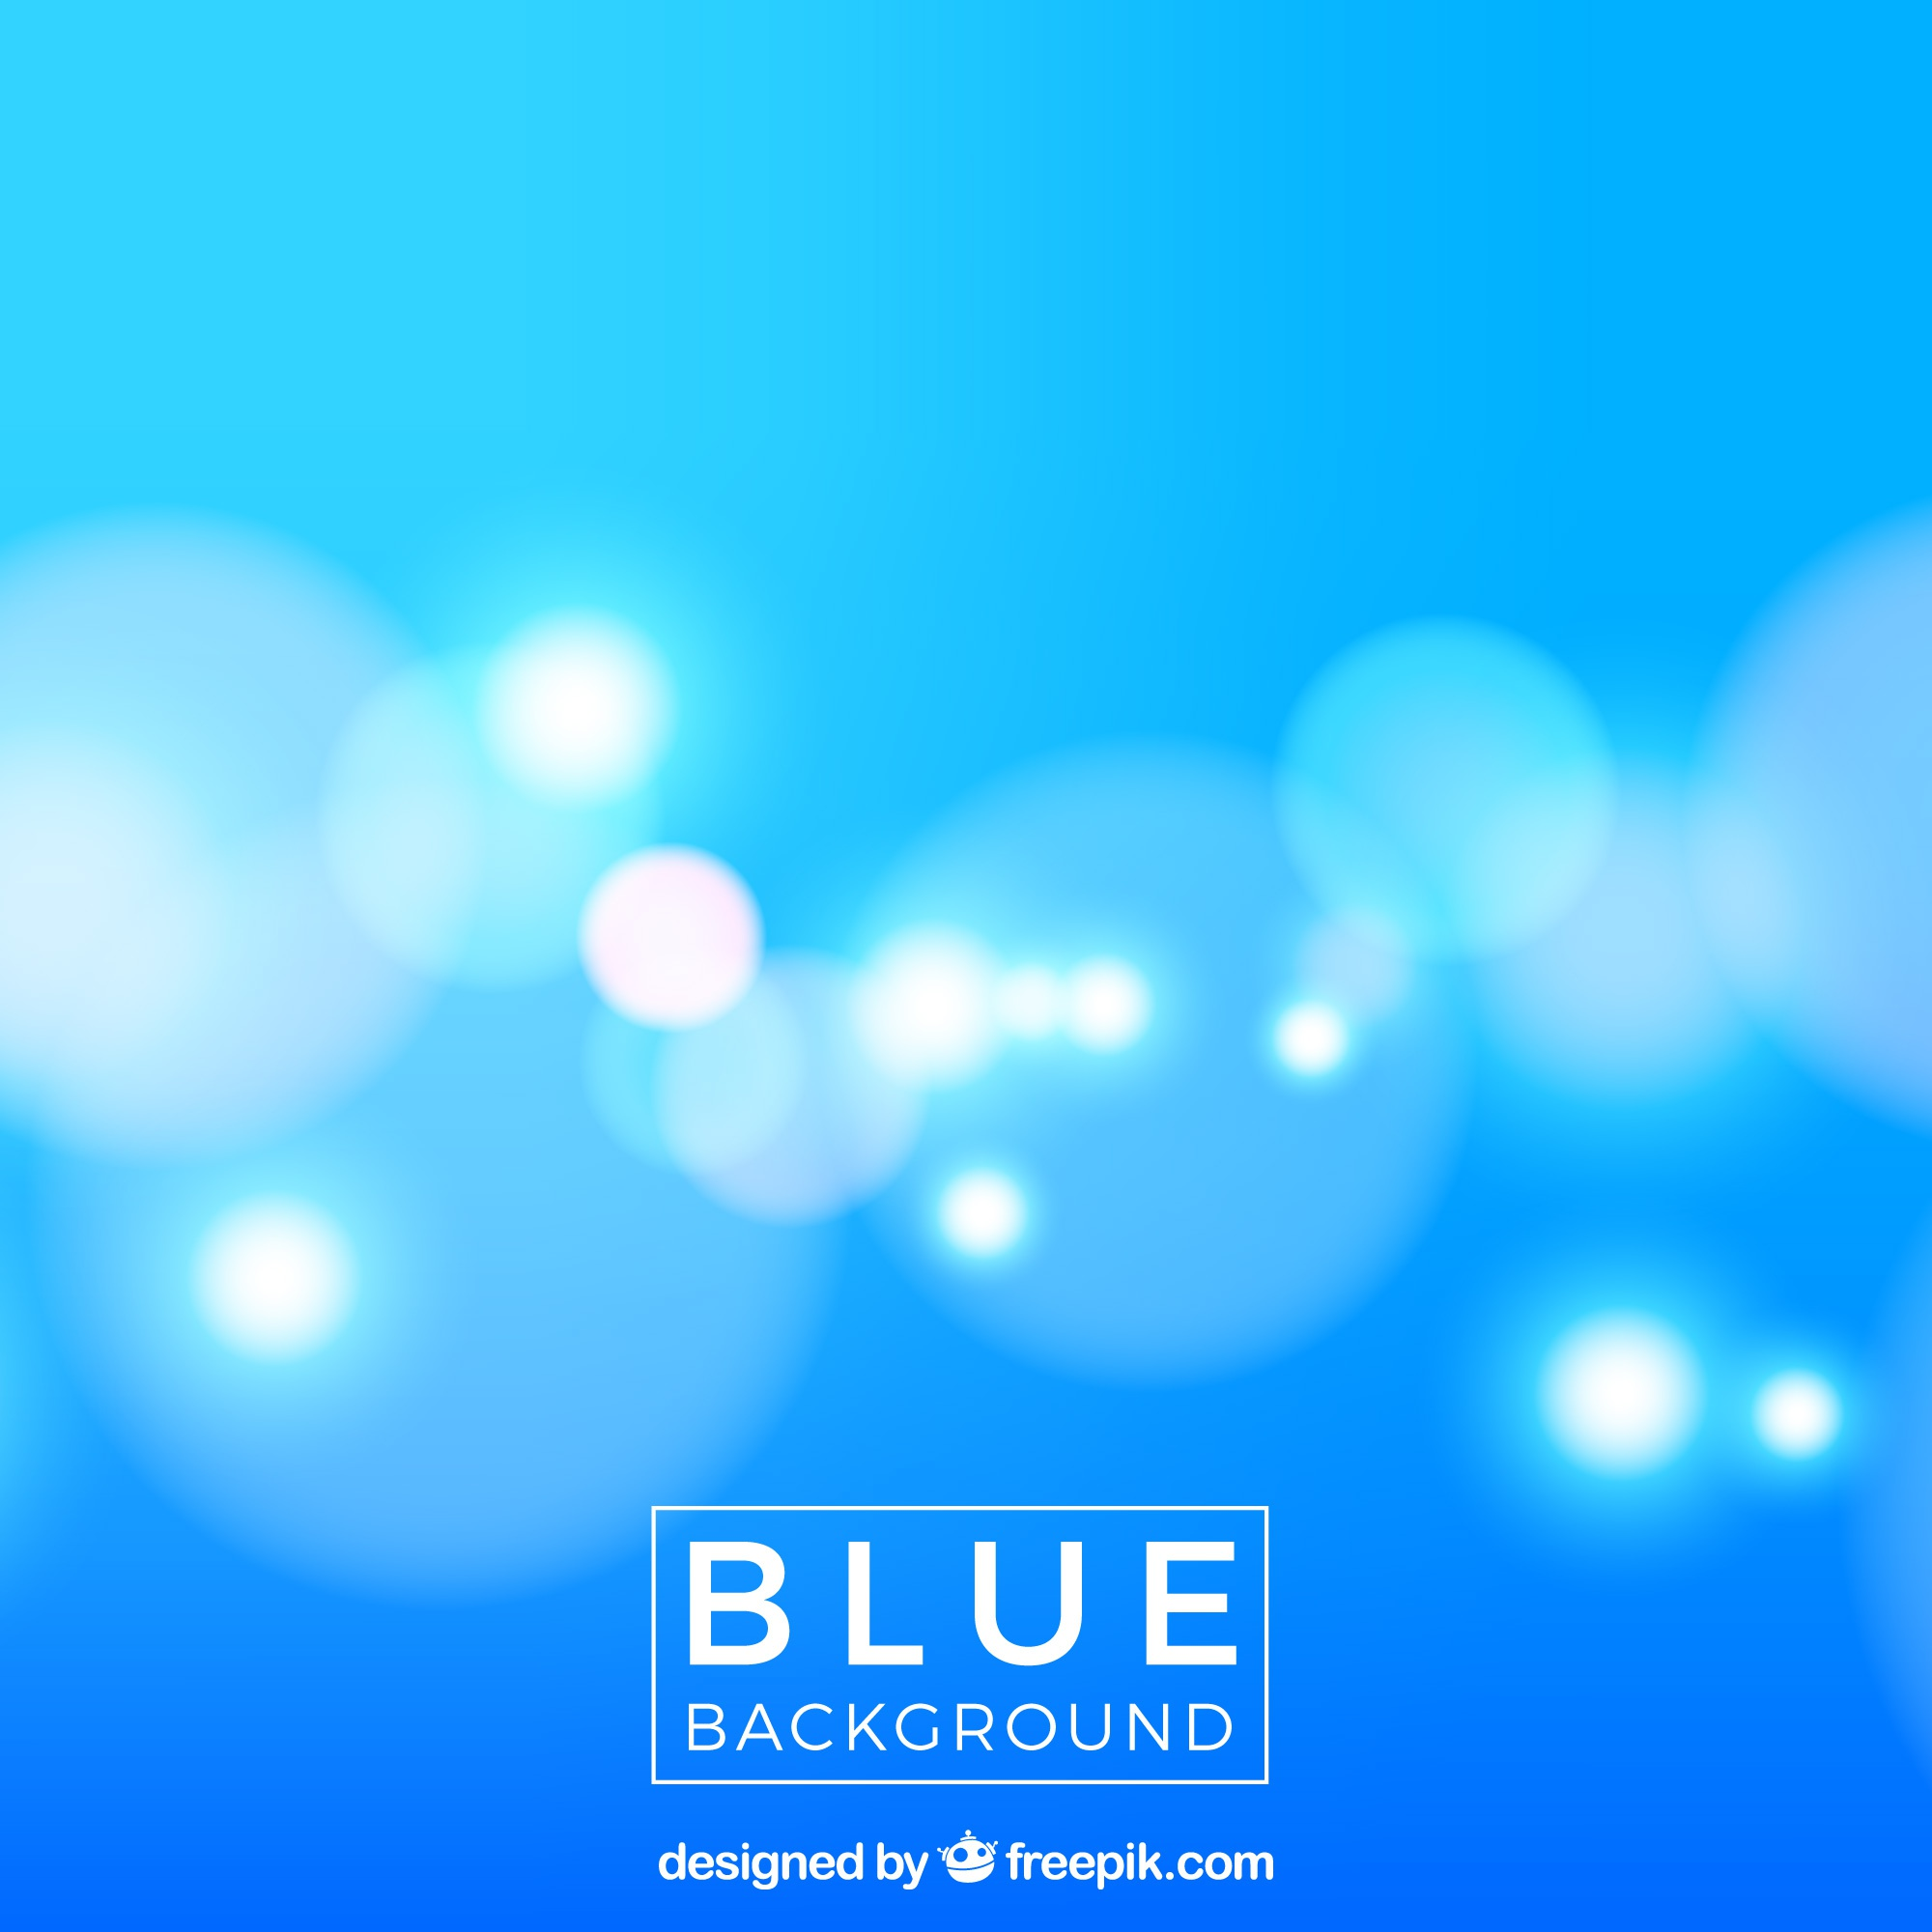 Blue blurred background with lights